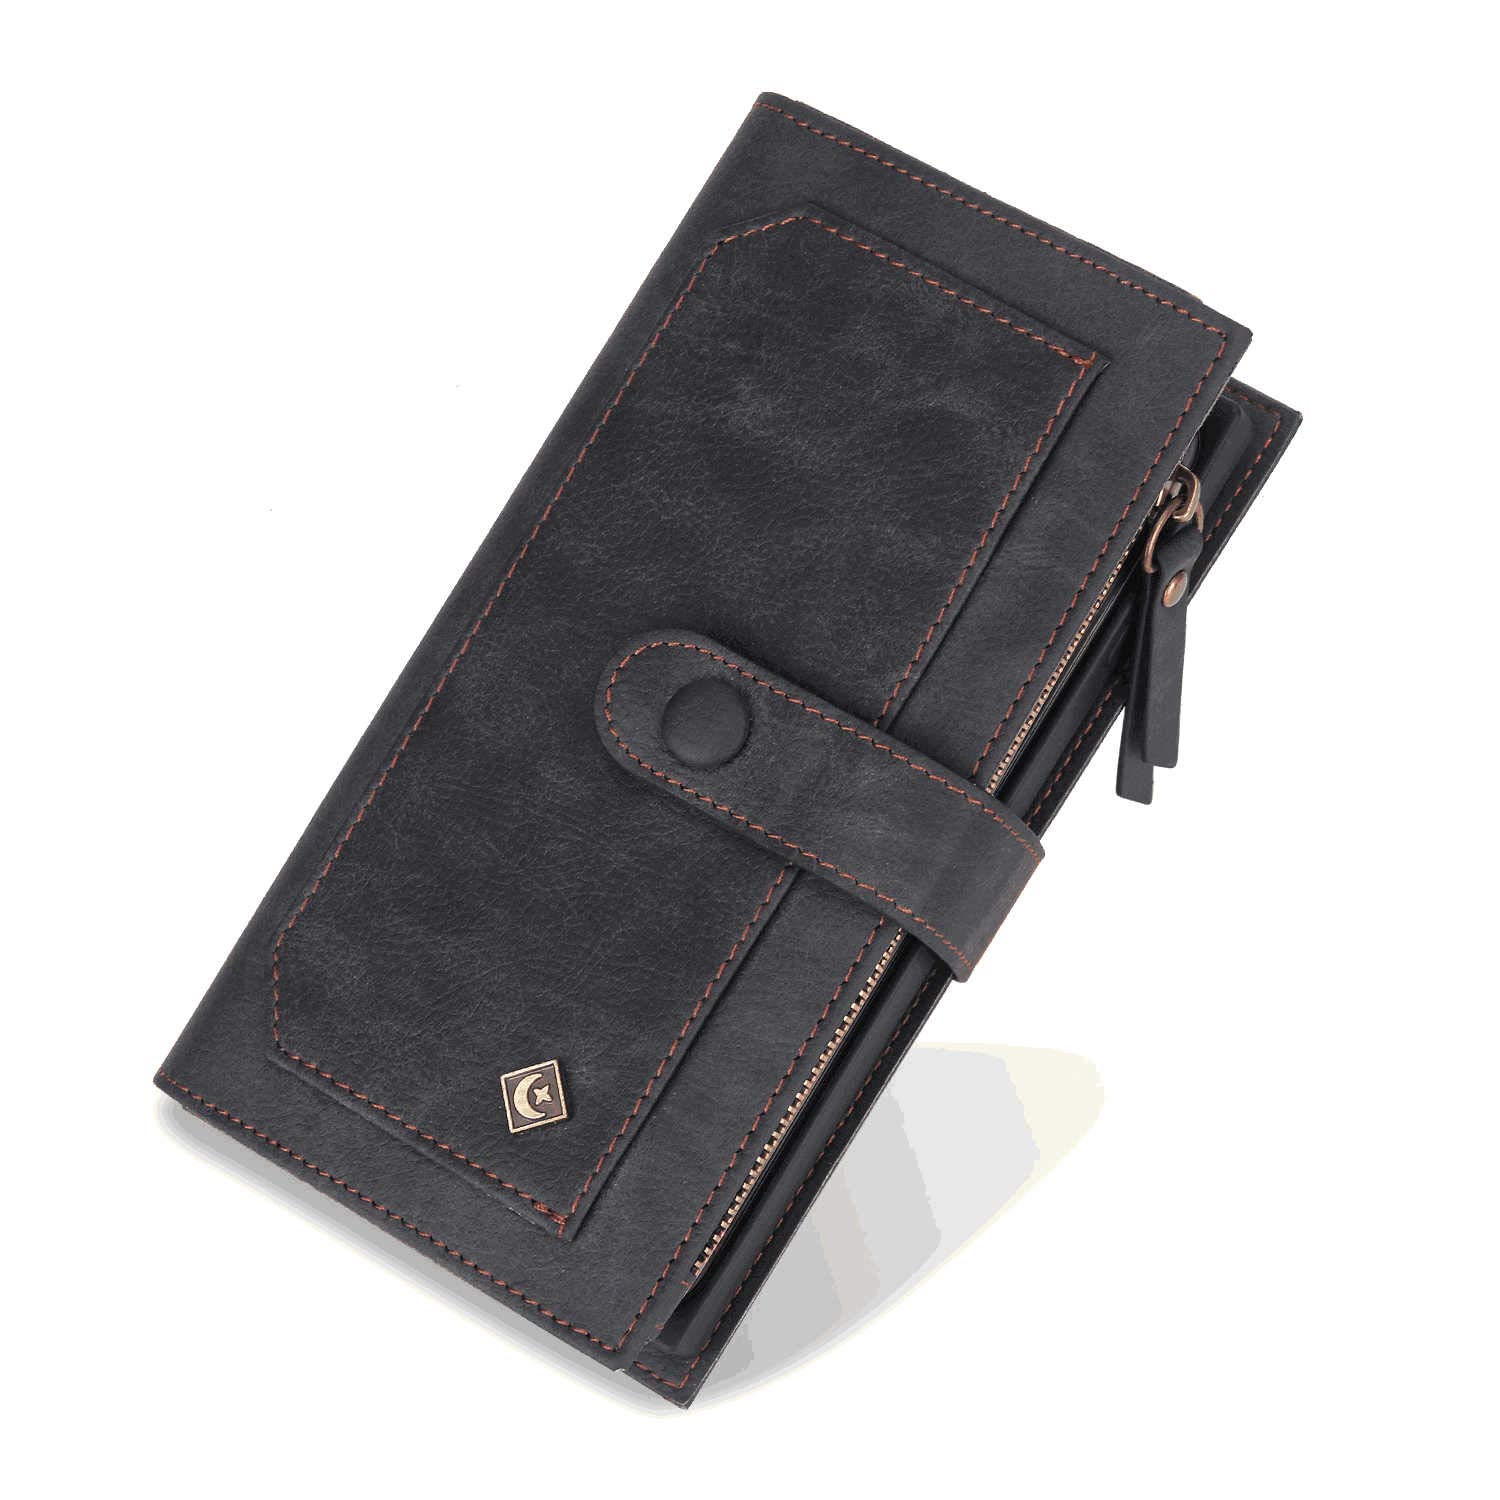 iPhone Xs Max Flip Case Cover for iPhone Xs Max Leather Kickstand Wallet Cover Card Holders Extra-Durable Business with Free Waterproof-Bag Delicate